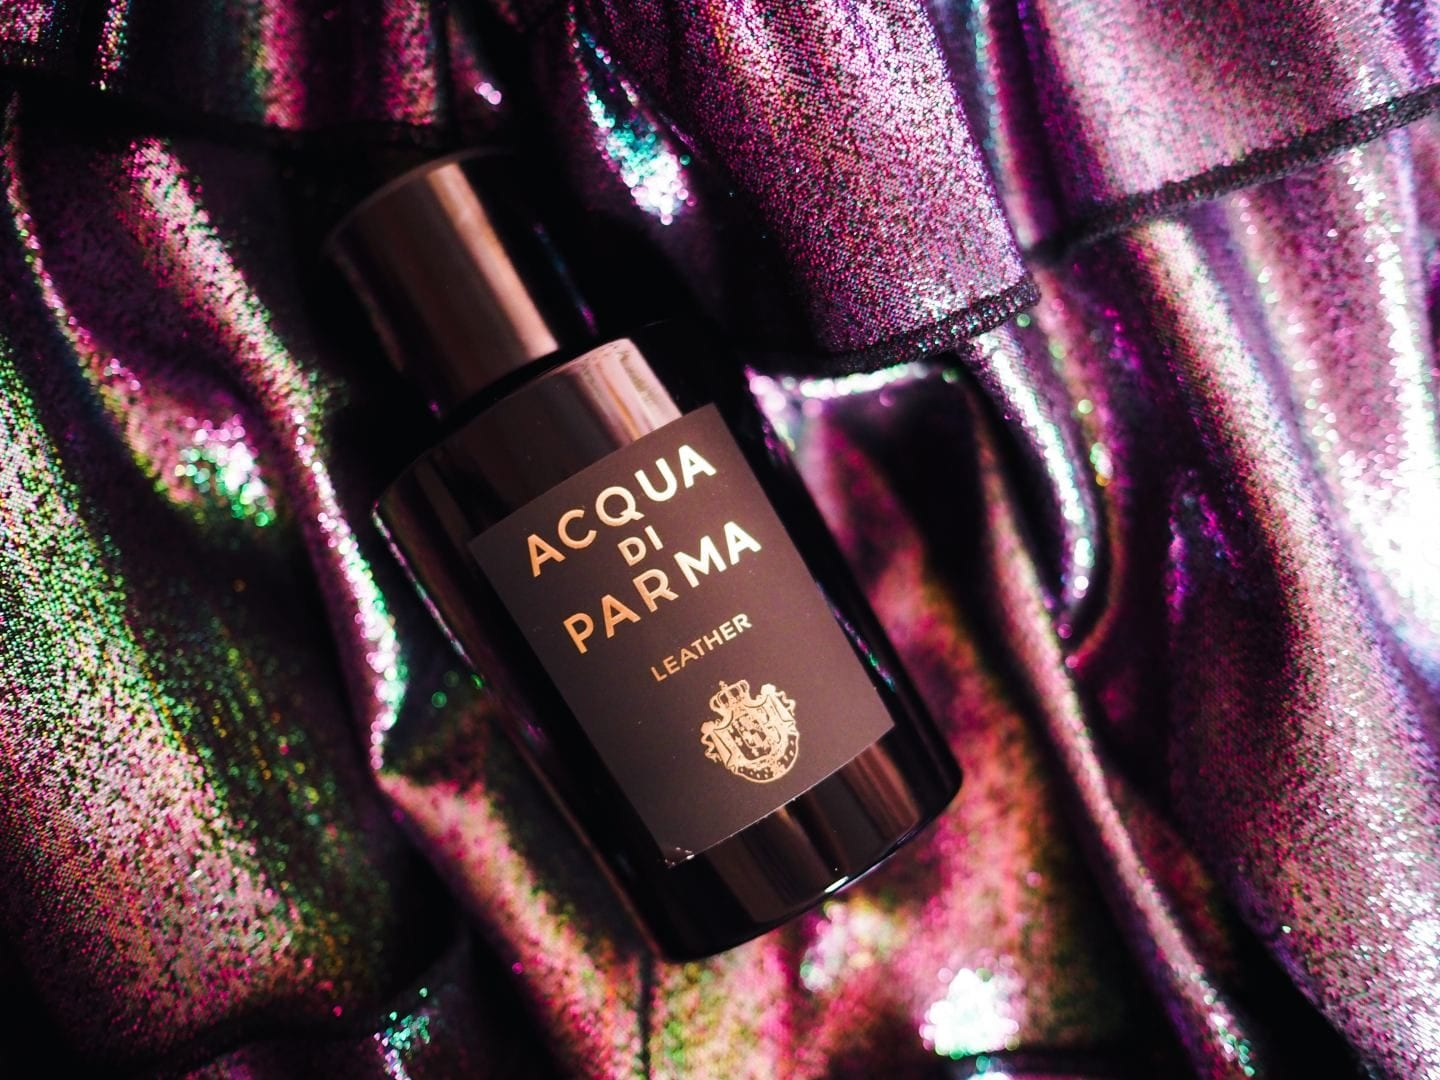 Acqua di Parma 'Leather' fragrance perfume review